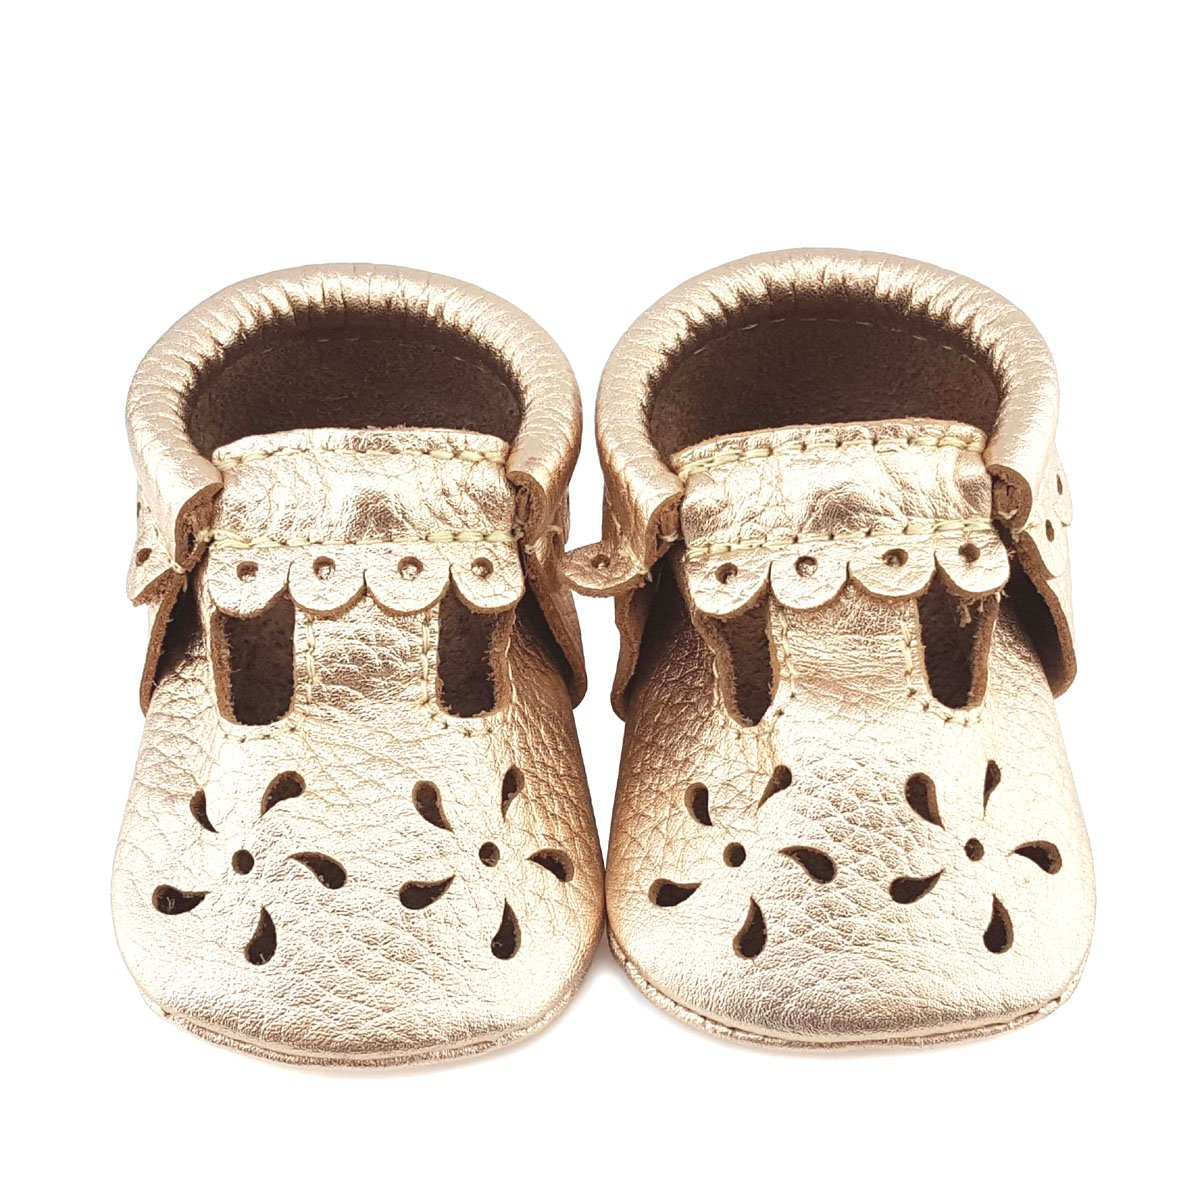 First Steps Sweet Mary Jane Leather Bootie Tan 2 M US INFANT